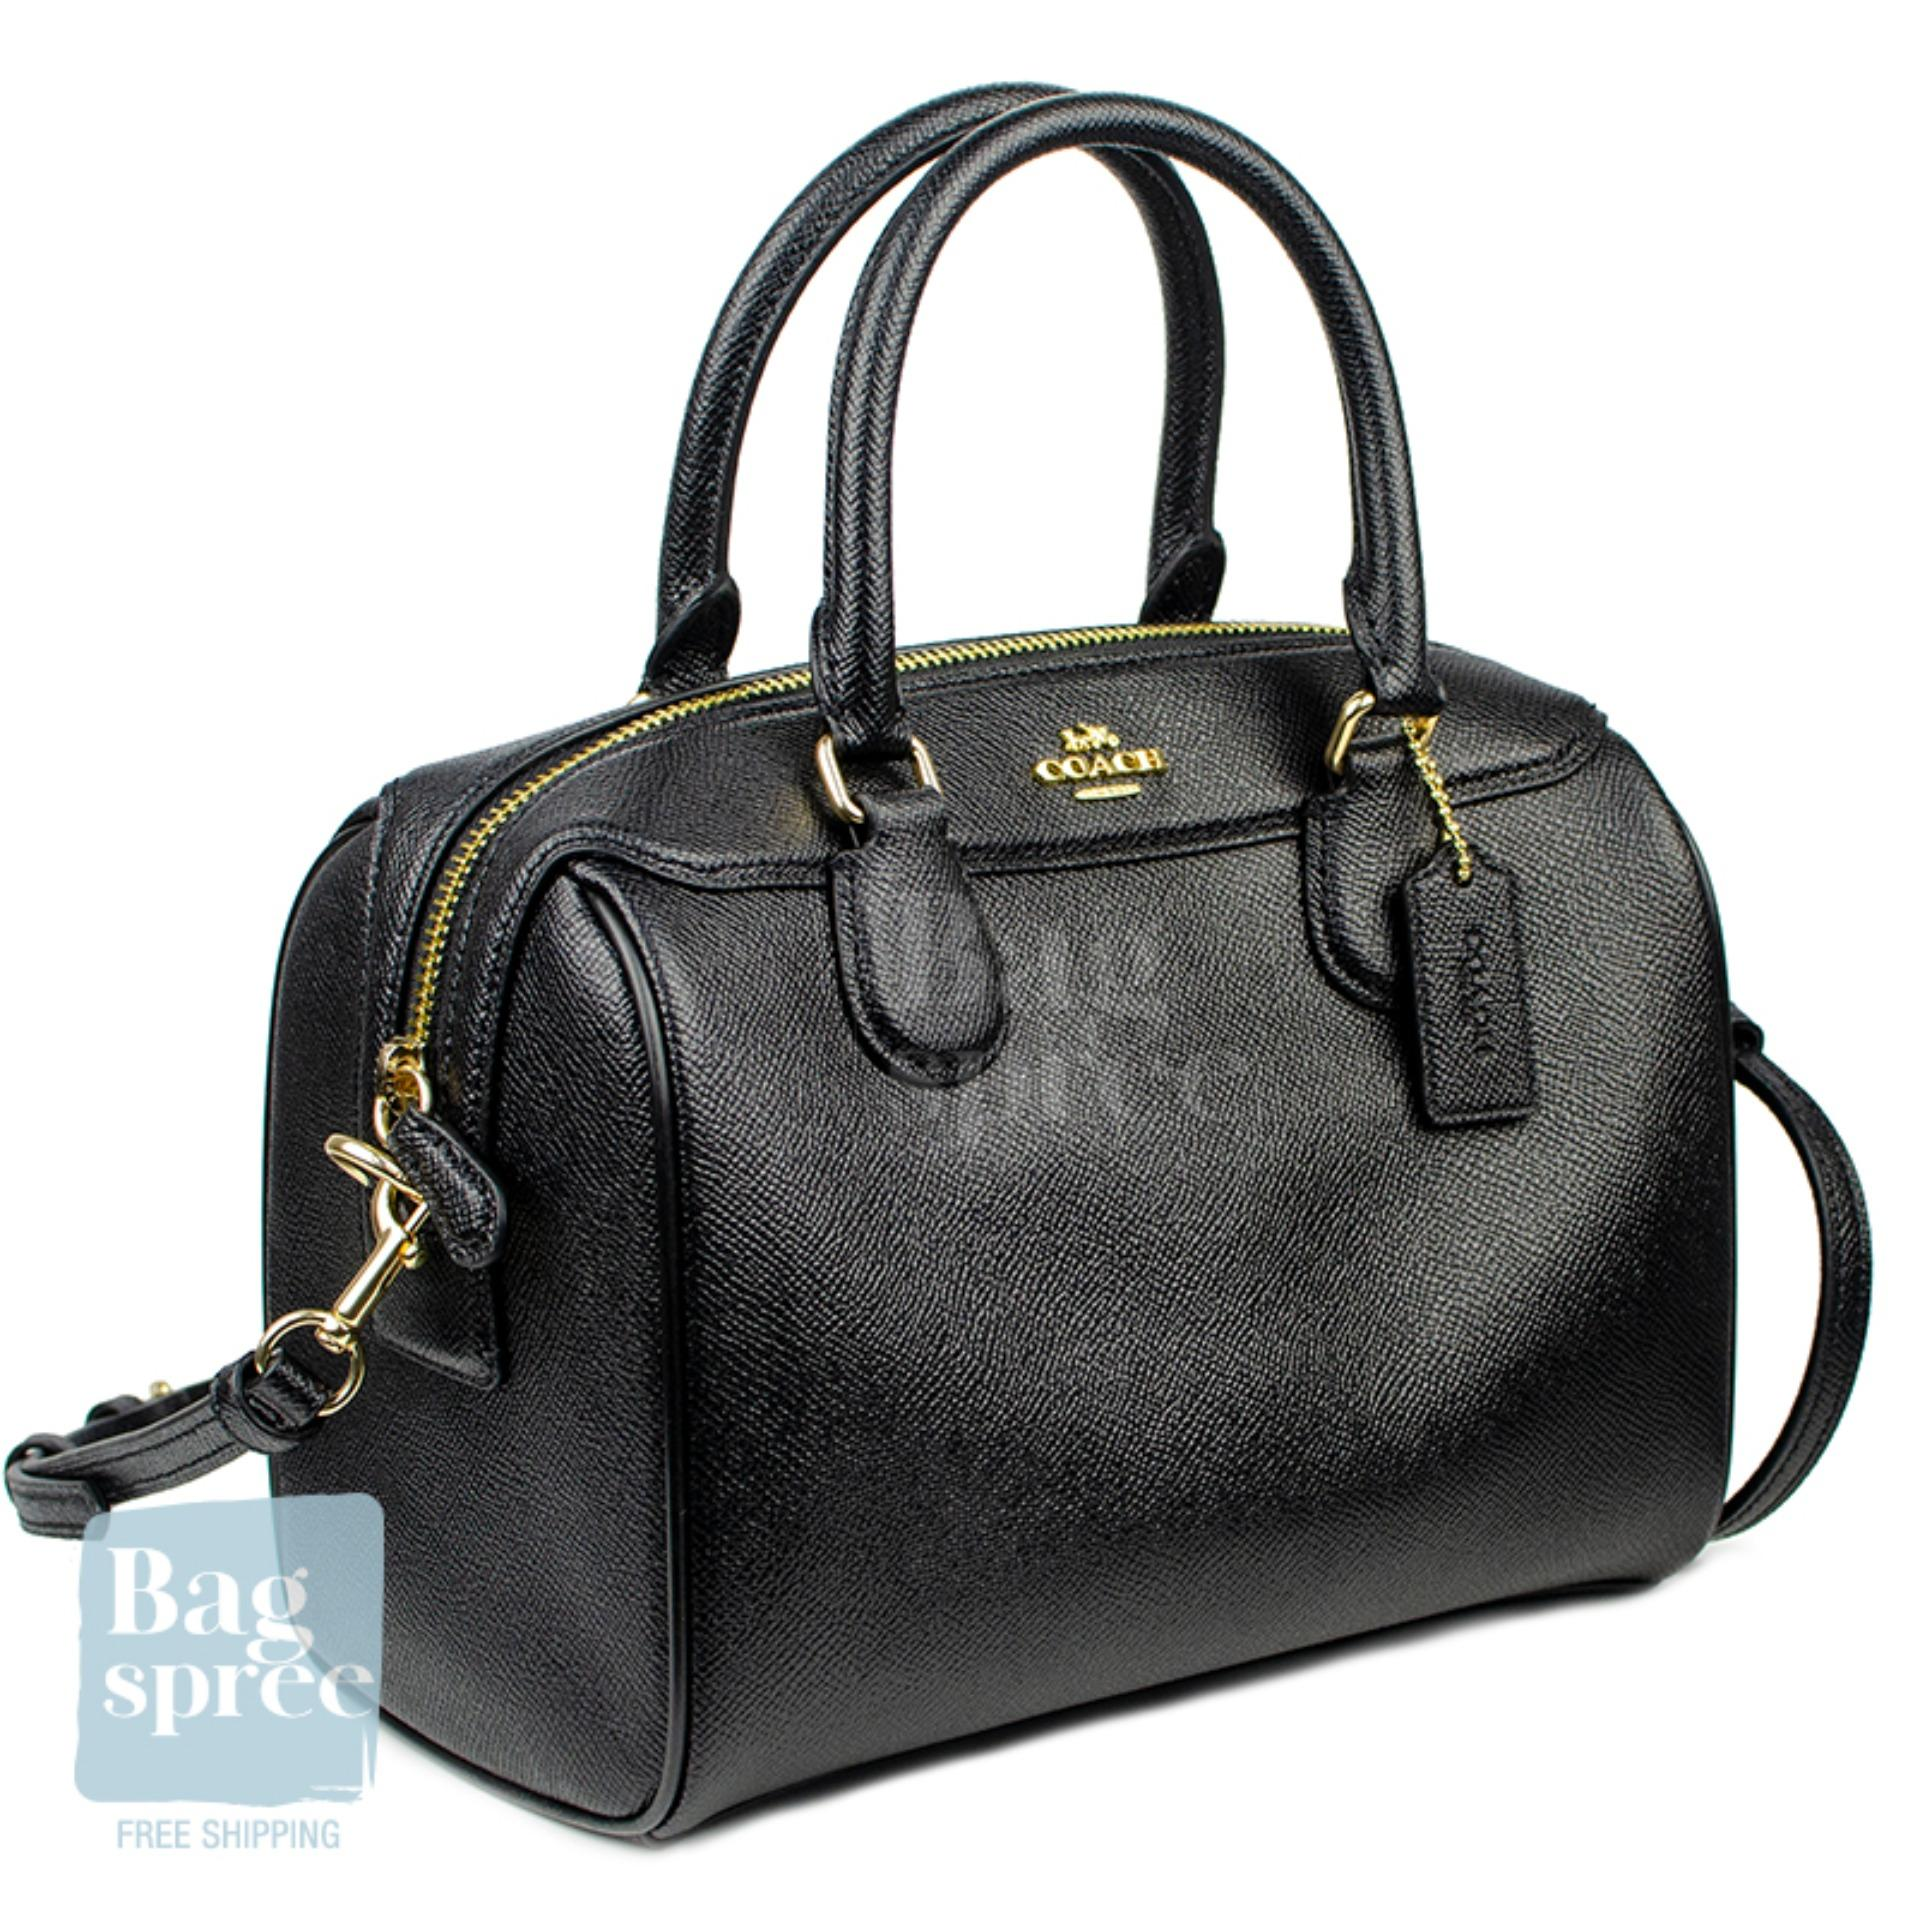 c31bf1a1 *Authentic & Brand New* Coach Mini Bennett Satchel Leather Bag F32202 [Gift  Receipt Provided] [OL]